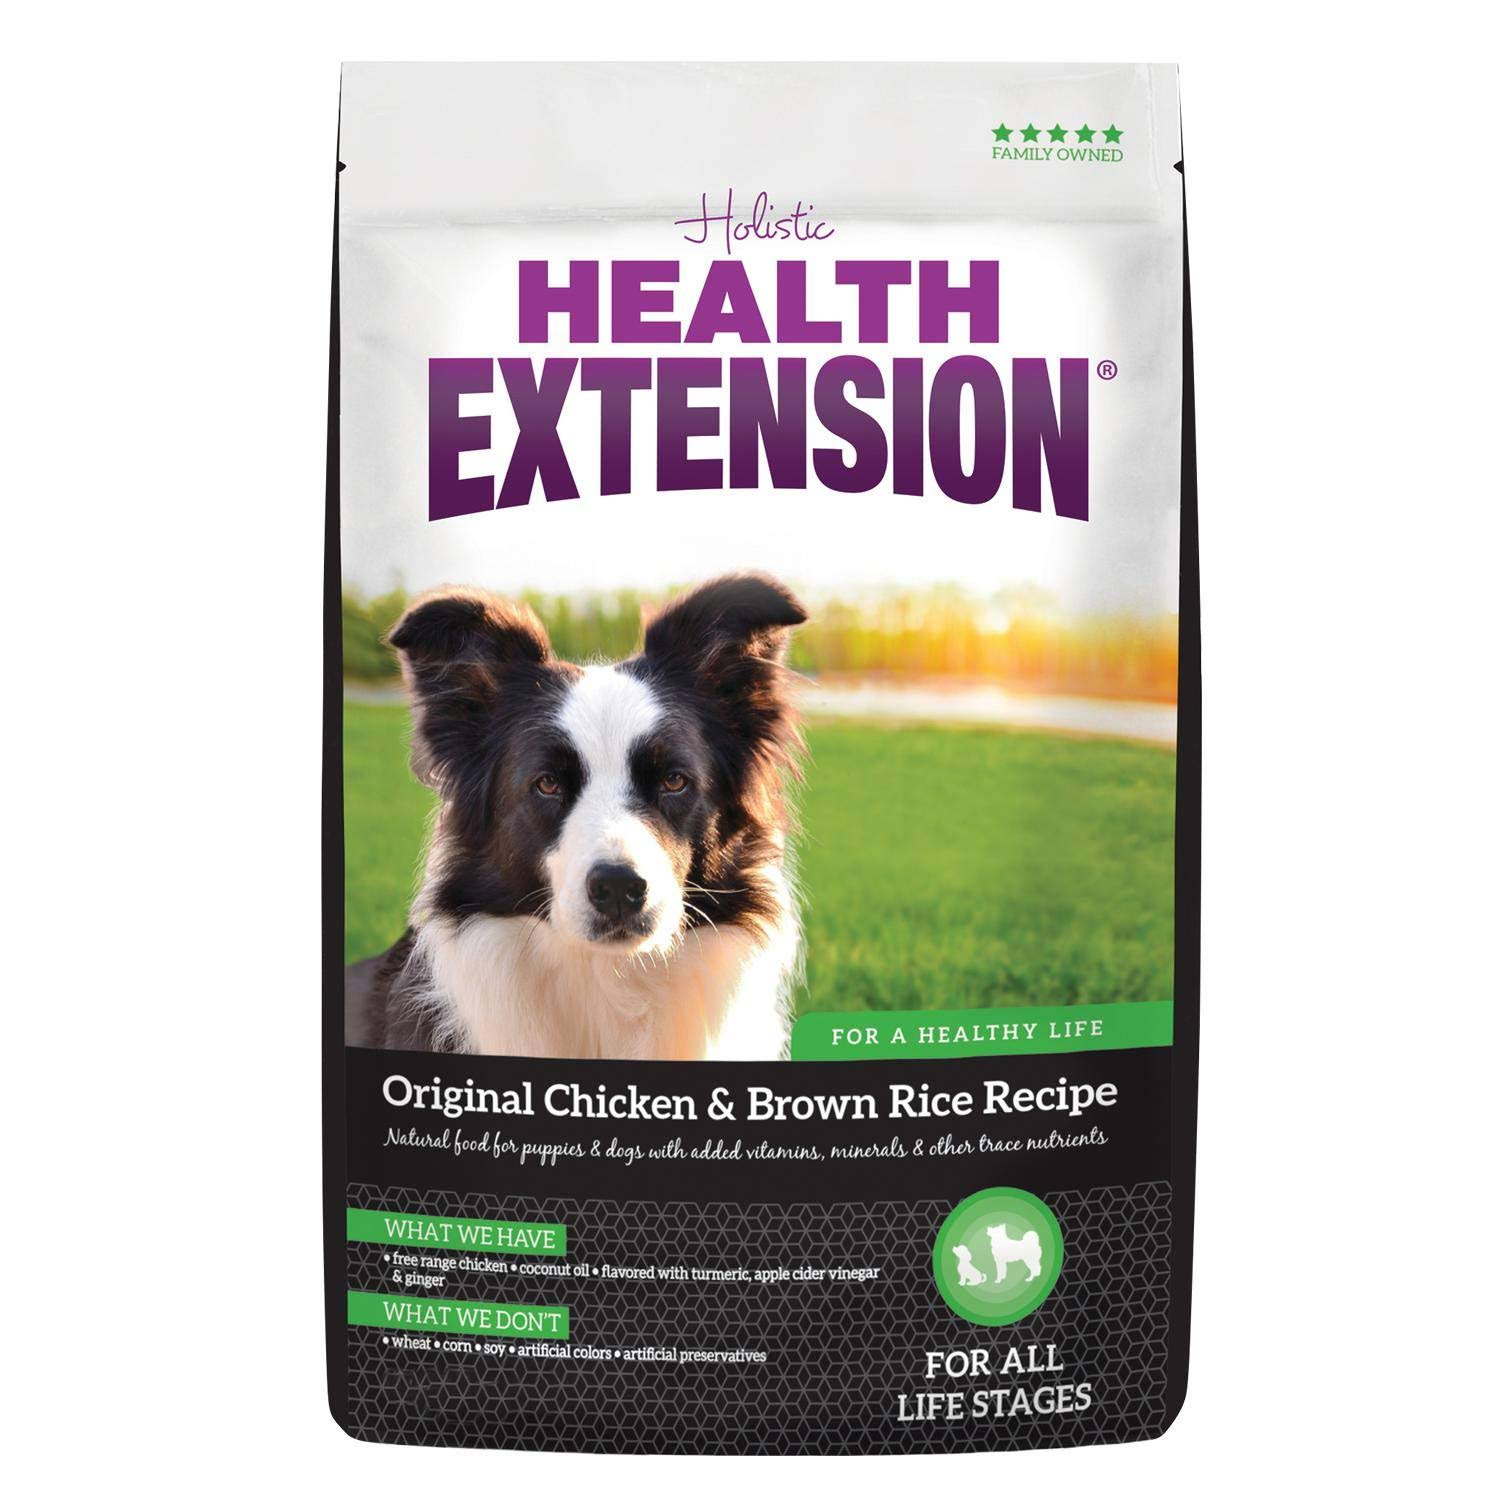 Health Extension Dog Food - Chicken